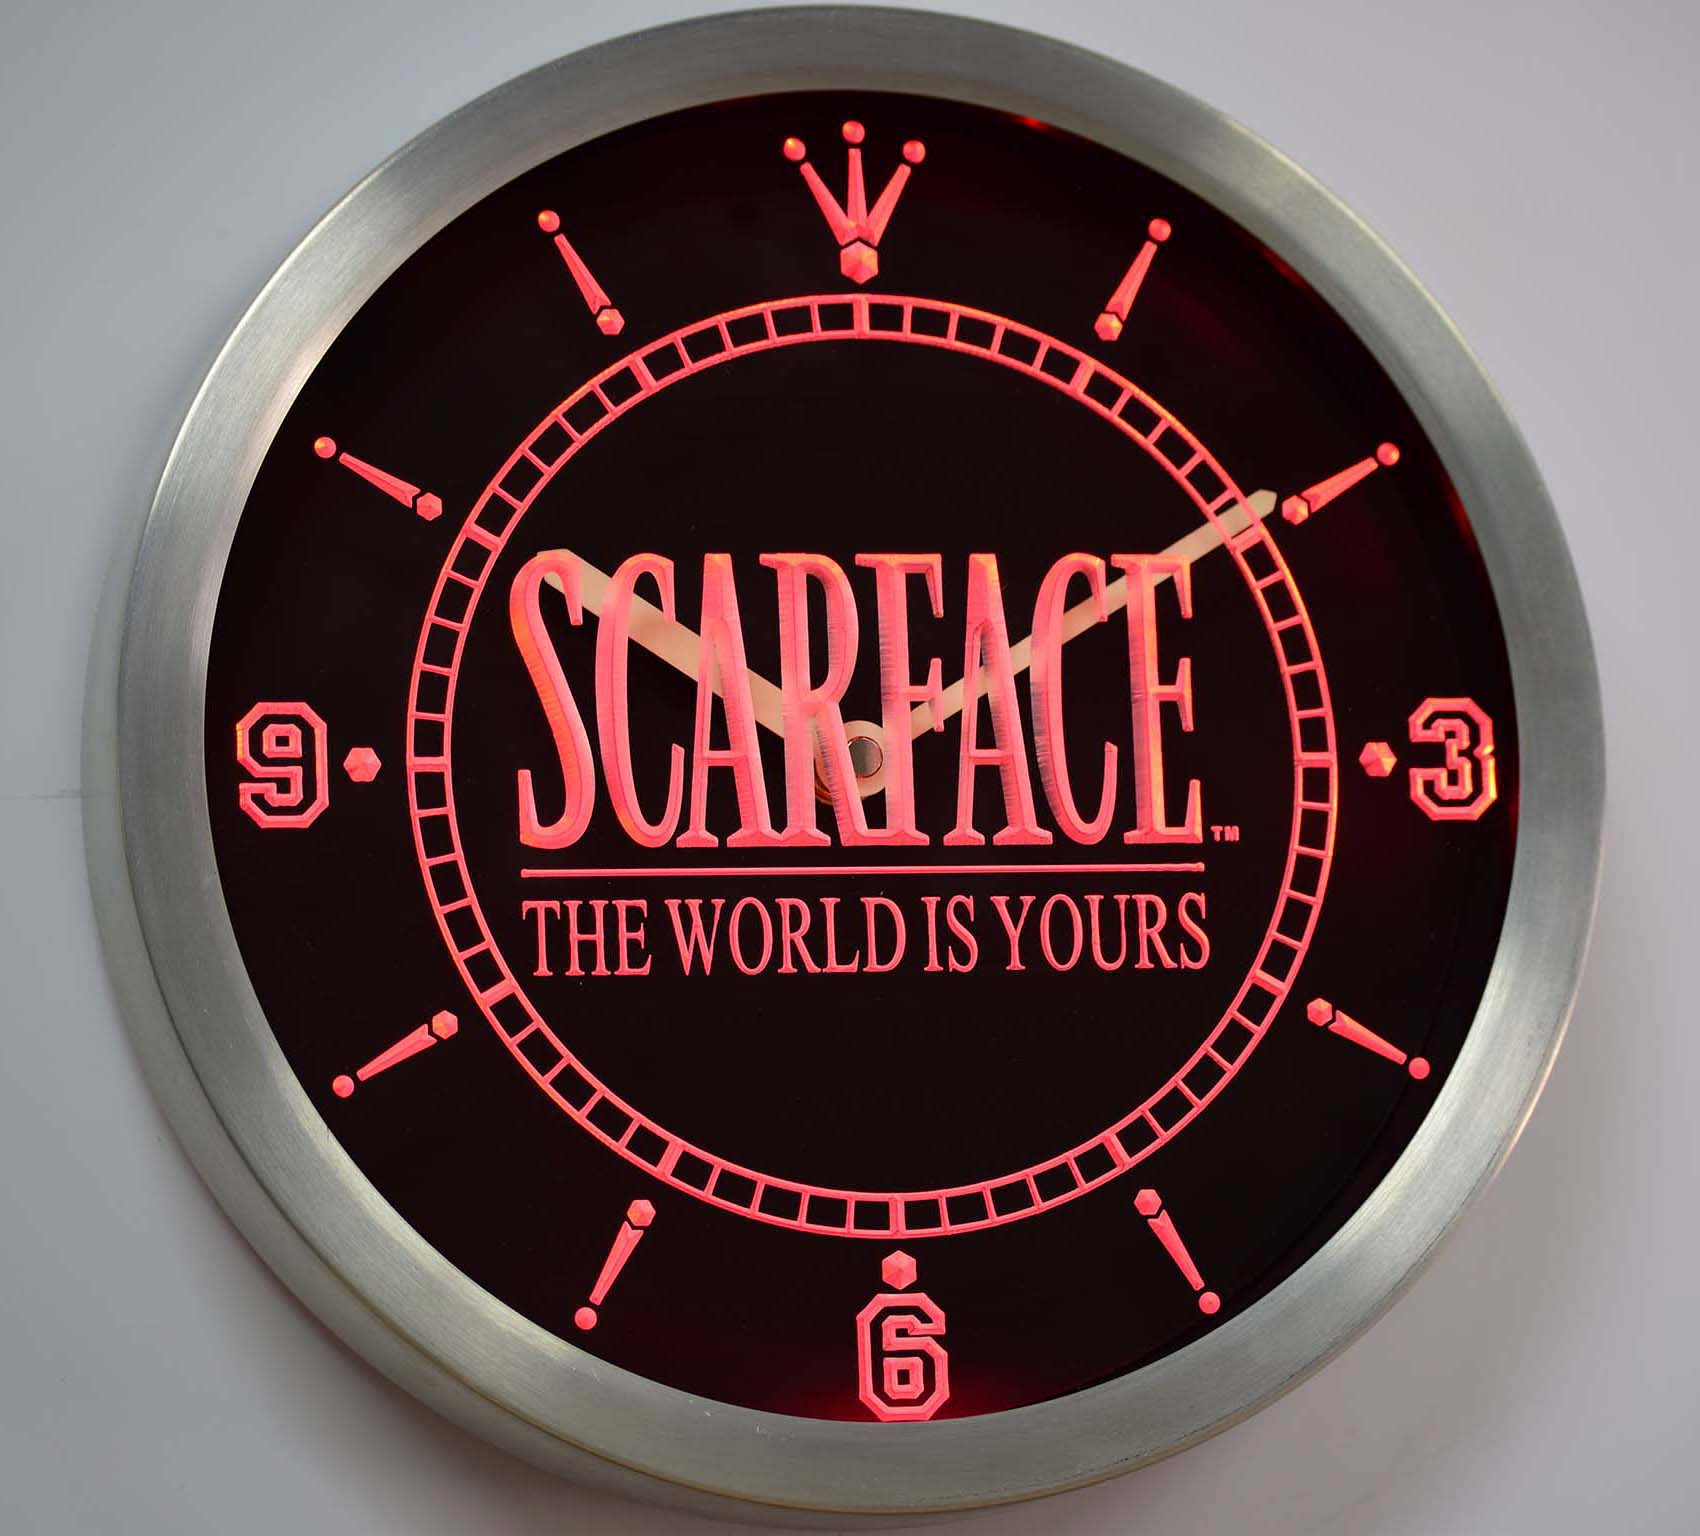 Scarface money power respect vinyl wall decal for home decore - Nc0153 Scarface The World Is Yours Bar Beer Neon Sign Led Wall Clock China